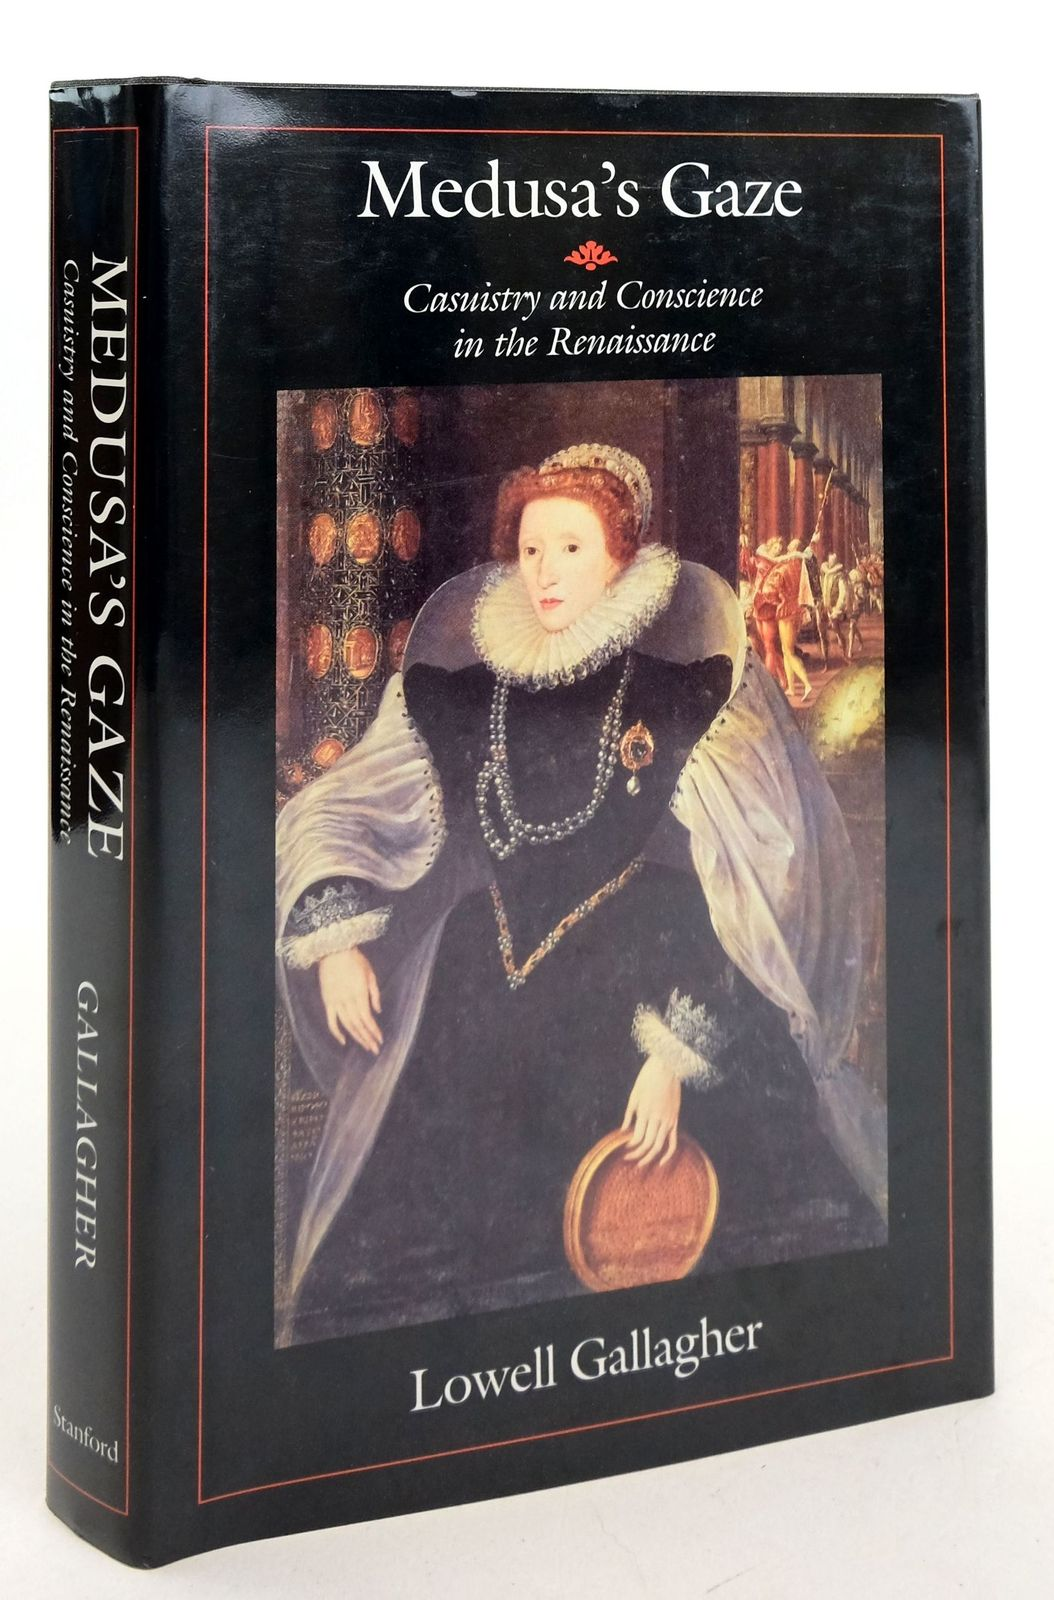 Photo of MEDUSA'S GAZE: CASUISTRY AND CONSCIENCE IN THE RENAISSANCE written by Gallagher, Lowell published by Stanford University Press (STOCK CODE: 1819661)  for sale by Stella & Rose's Books